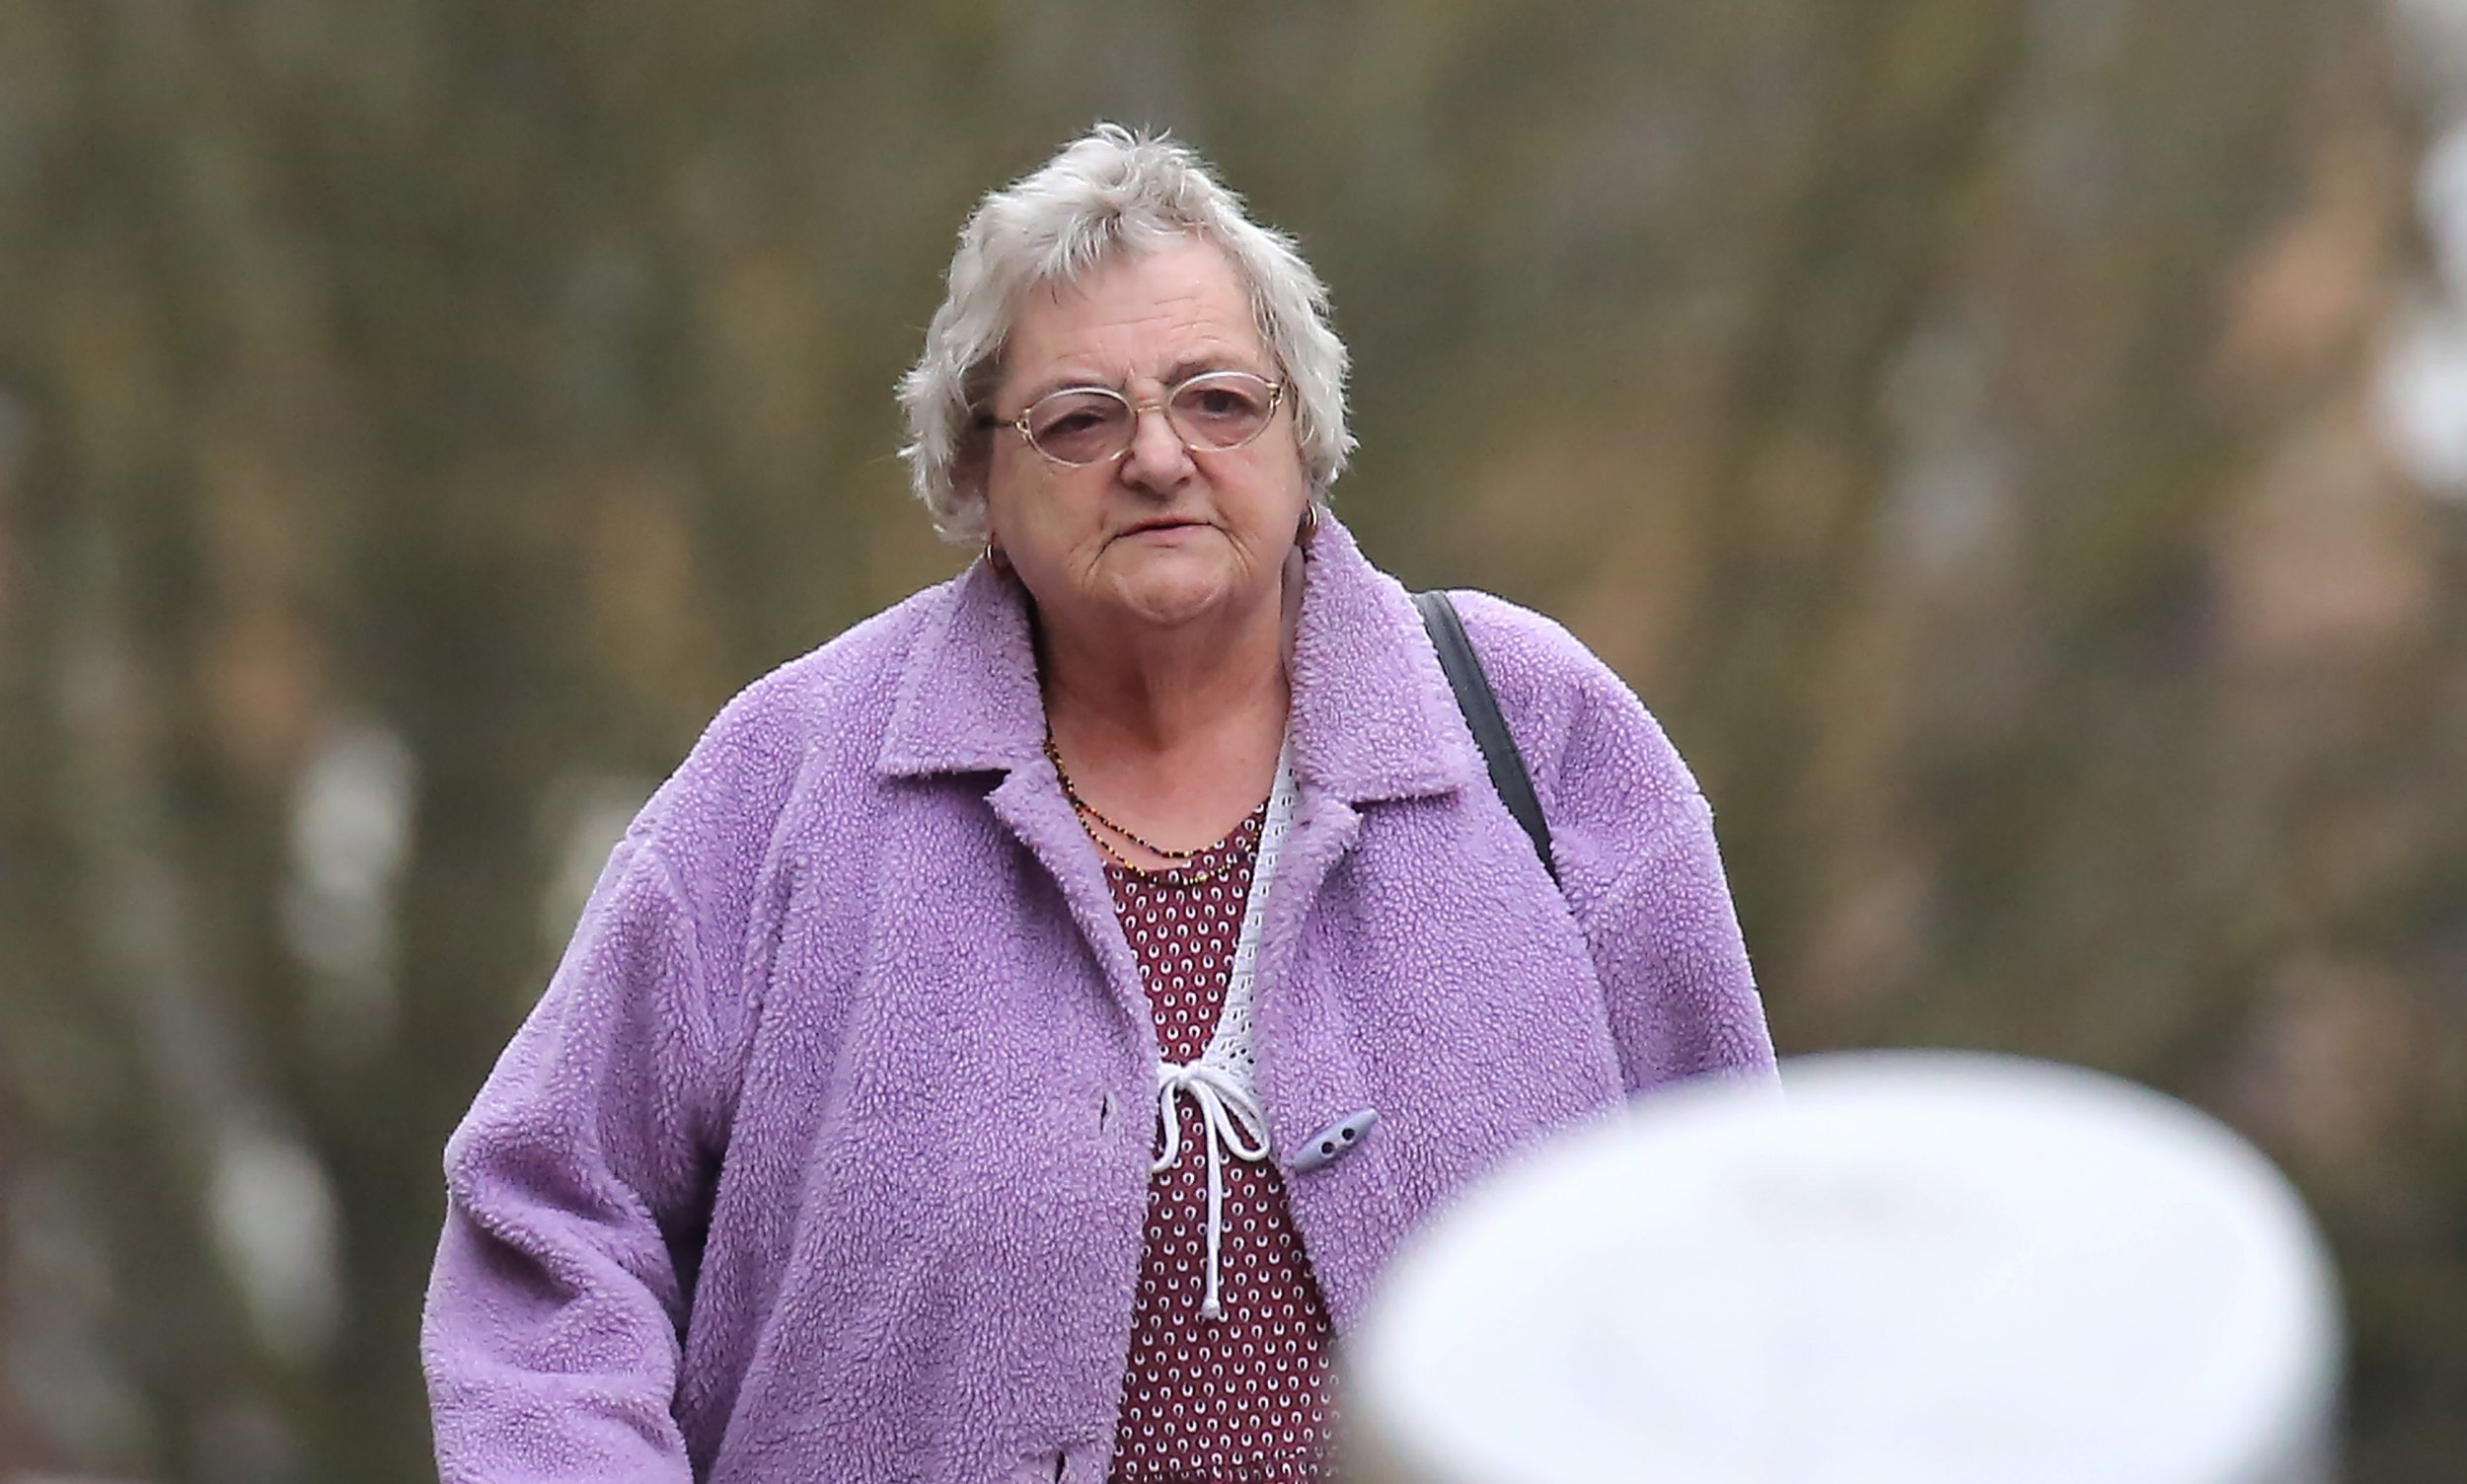 south beds news agency-luton-(fairleys)..angela ayre....murder trial....luton crown court